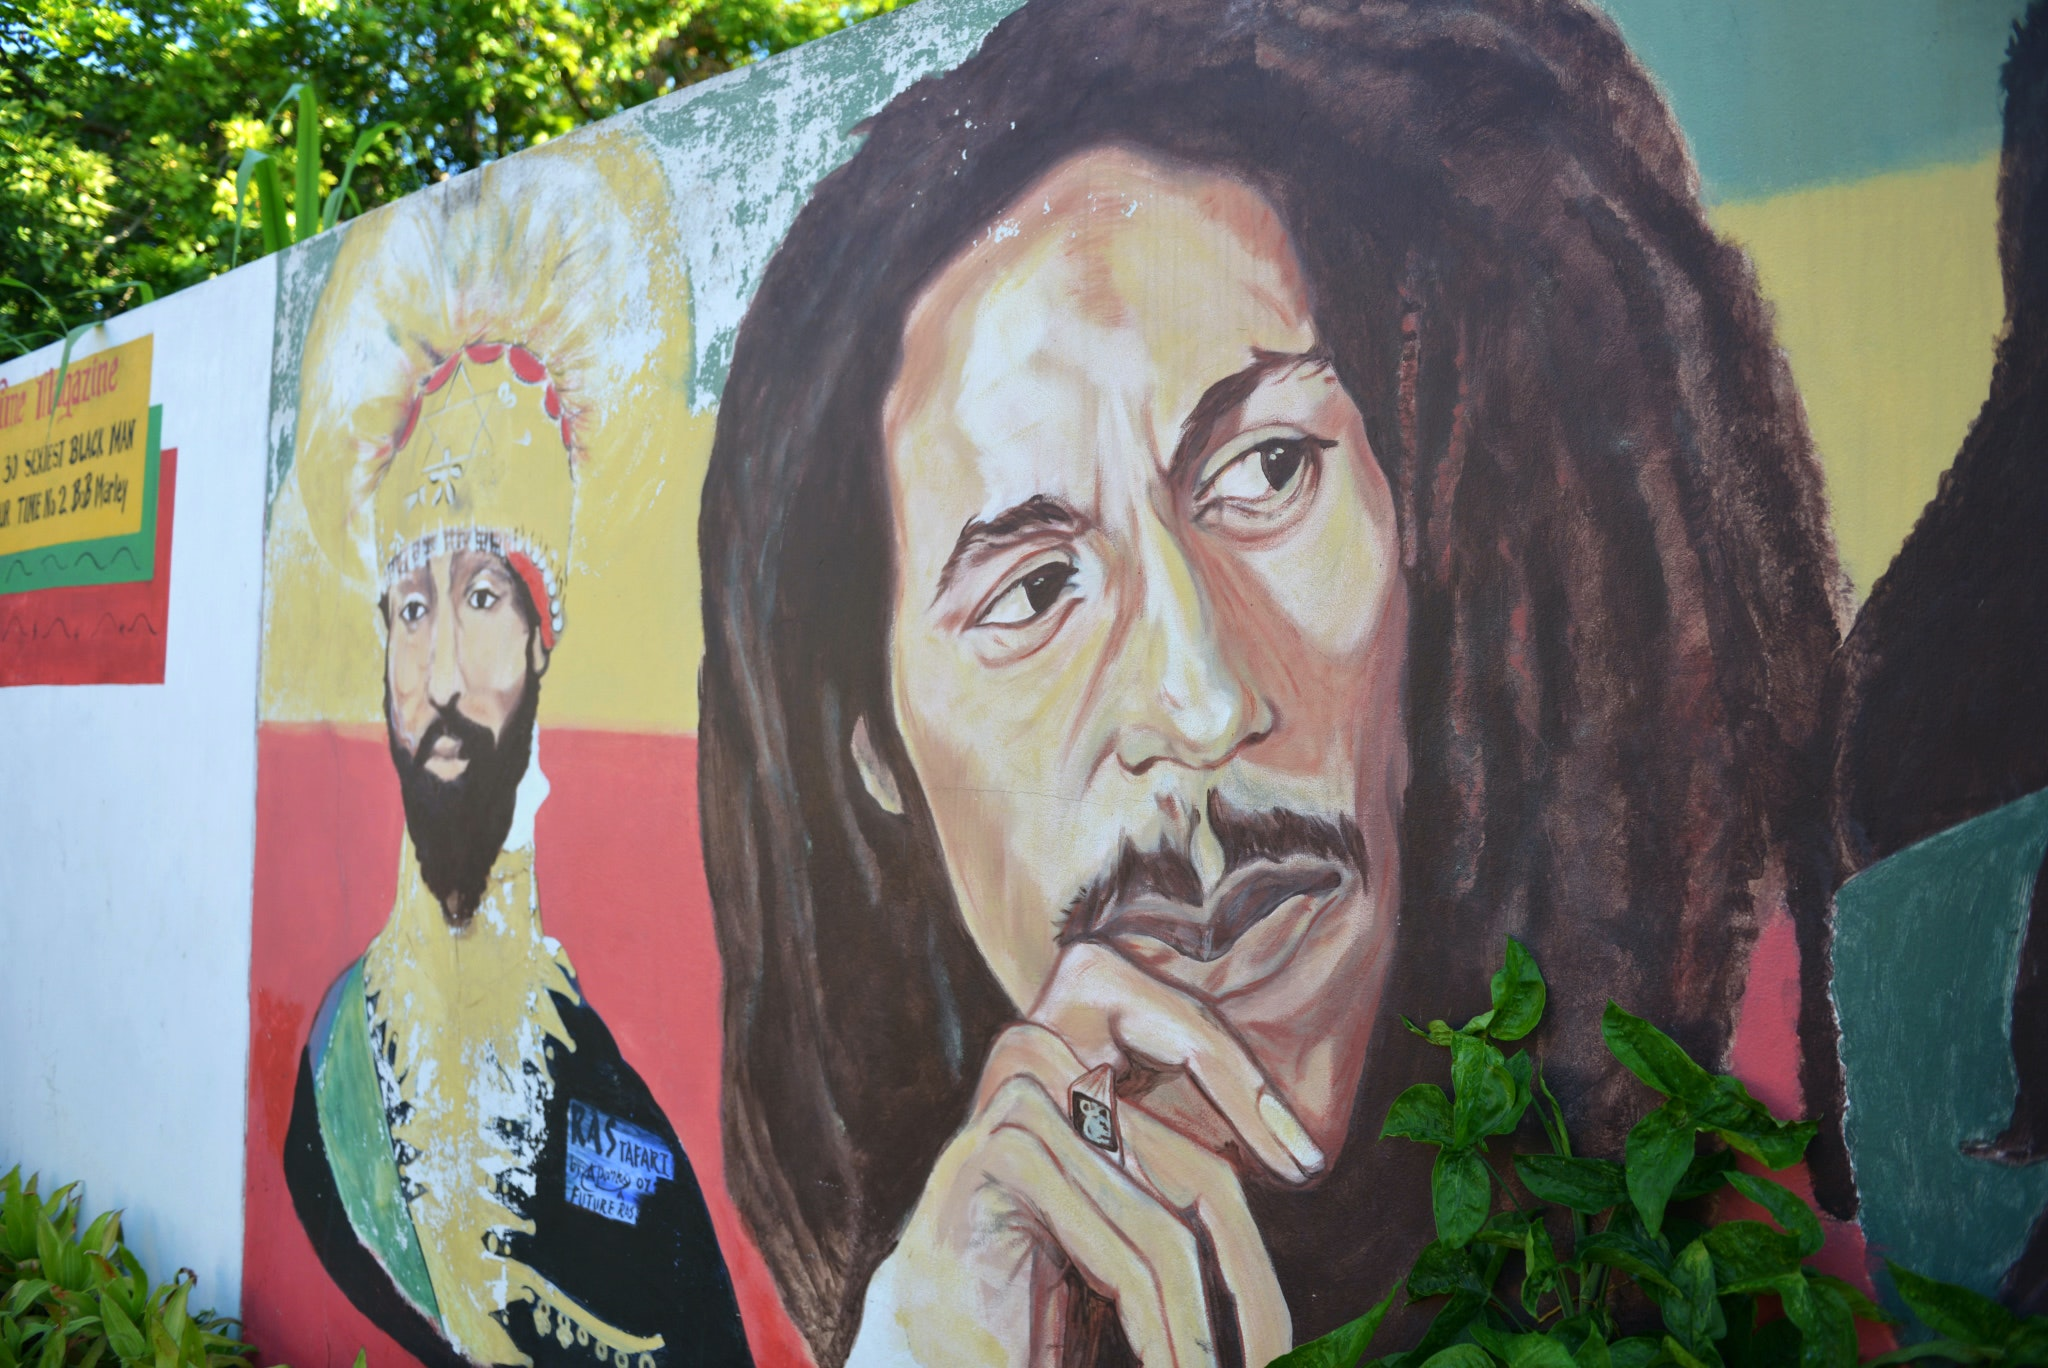 A mural depicting reggae music icon Bob Marley, right, and former Ethiopia's Emperor Haile Selassie decorate a wall in the yard of Marley's Kingston home, in Jamaica. AP Photo/ David McFadden